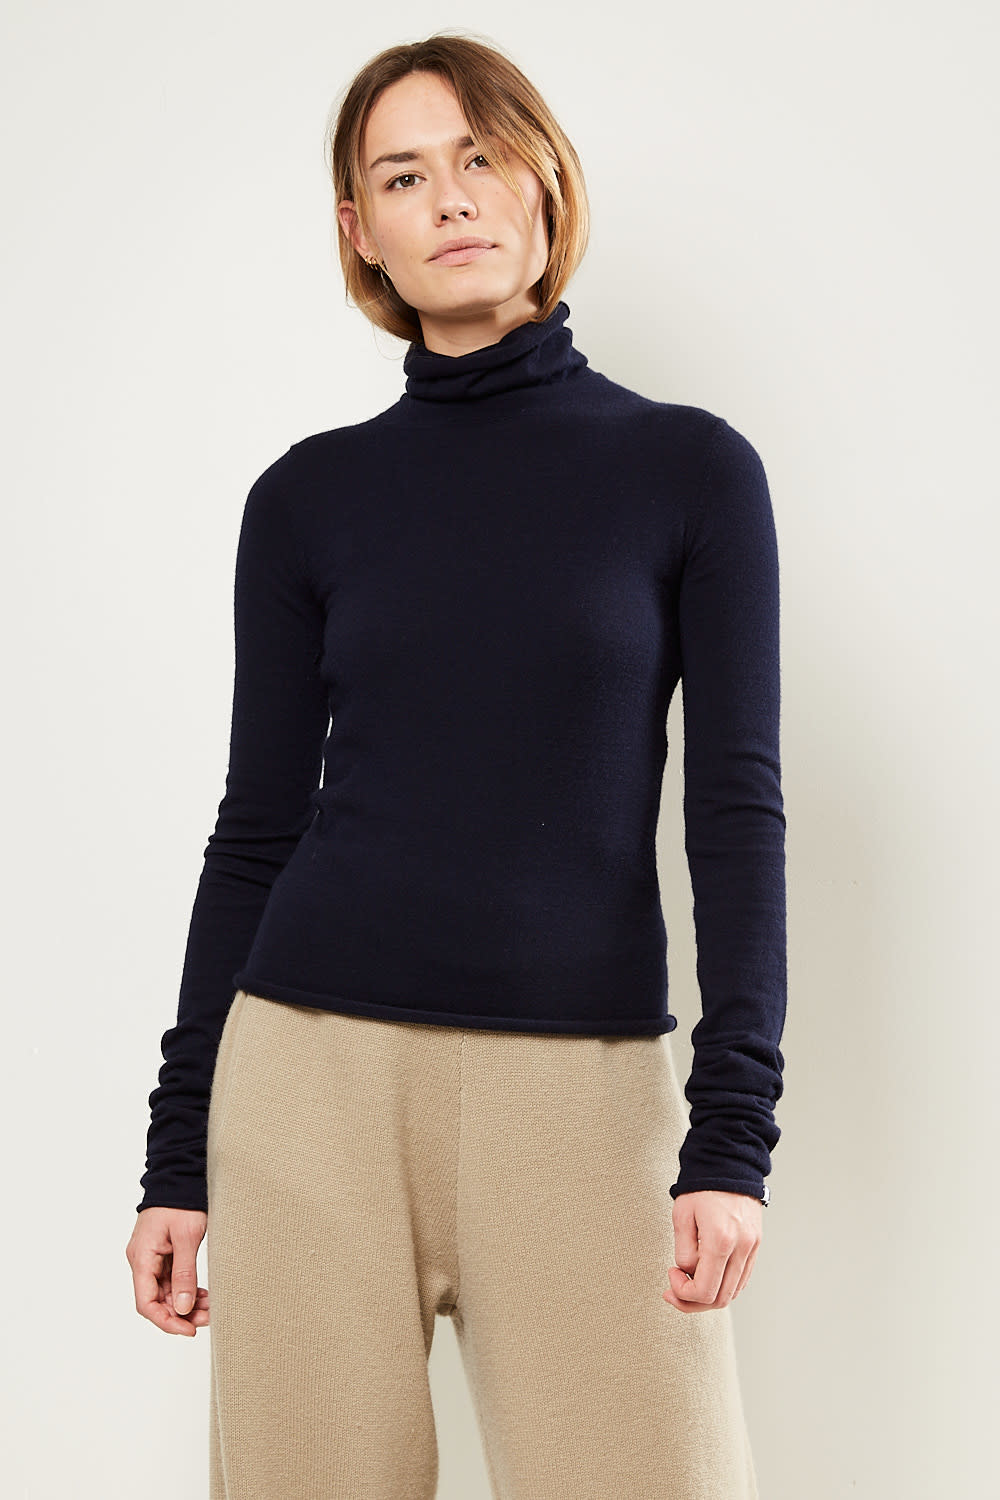 extreme cashmere - No129 Under classic fitted roll neck navy